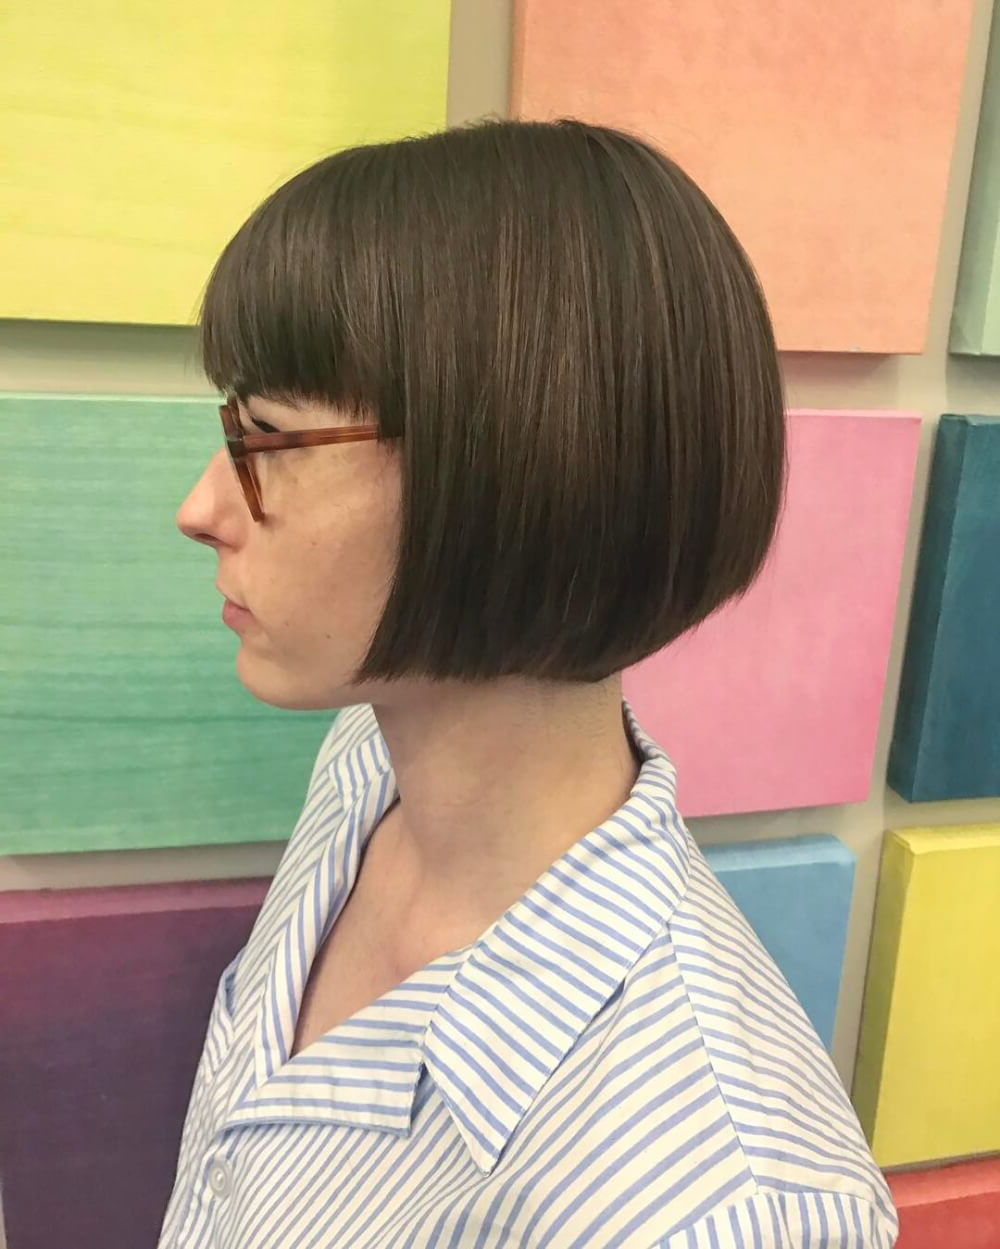 50 Chic Short Bob Haircuts & Hairstyles For Women In 2020 Regarding Favorite Ear Length French Bob Hairstyles (View 12 of 20)